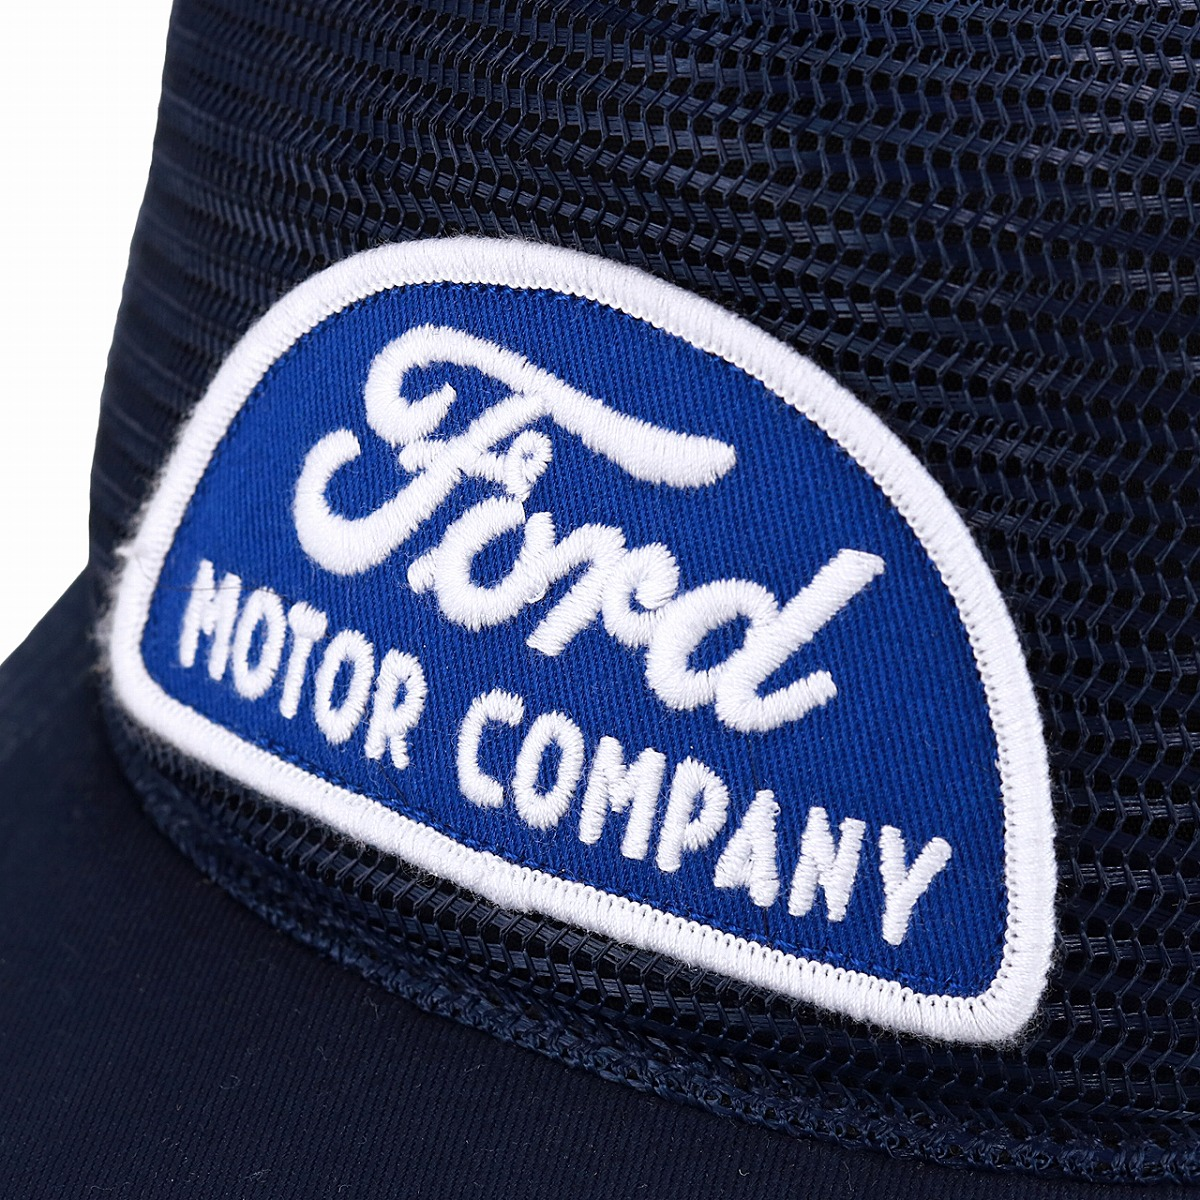 c8678ba63b9 American needle cap ford motor company mesh baseball cap AMERICAN NEEDLE  four season men baseball cap emblem Ford Lady s dark blue navy (Christmas  gift ...